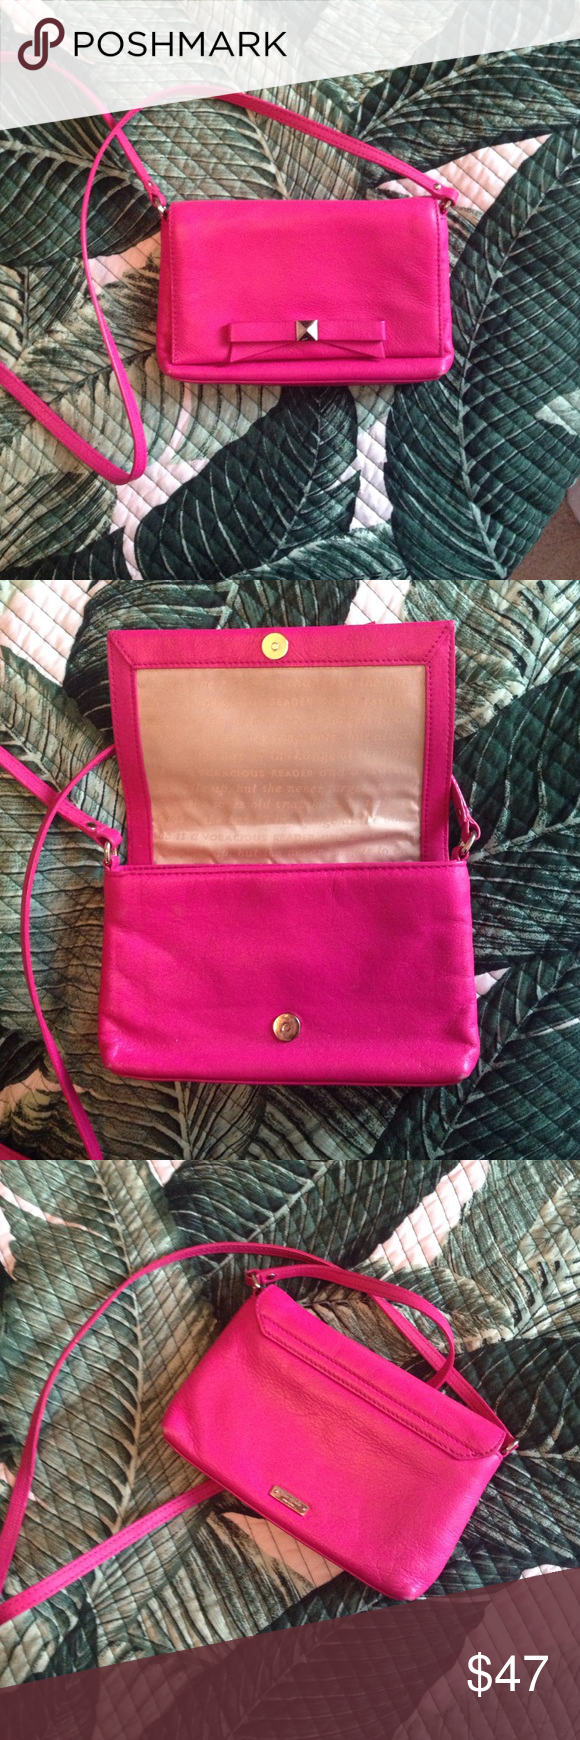 Pink Kate Spade New York Mini Bag Lightly used Kate Spade New York purse. Slight fading on corners. Perfect for nights out! 💕 kate spade Bags Mini Bags